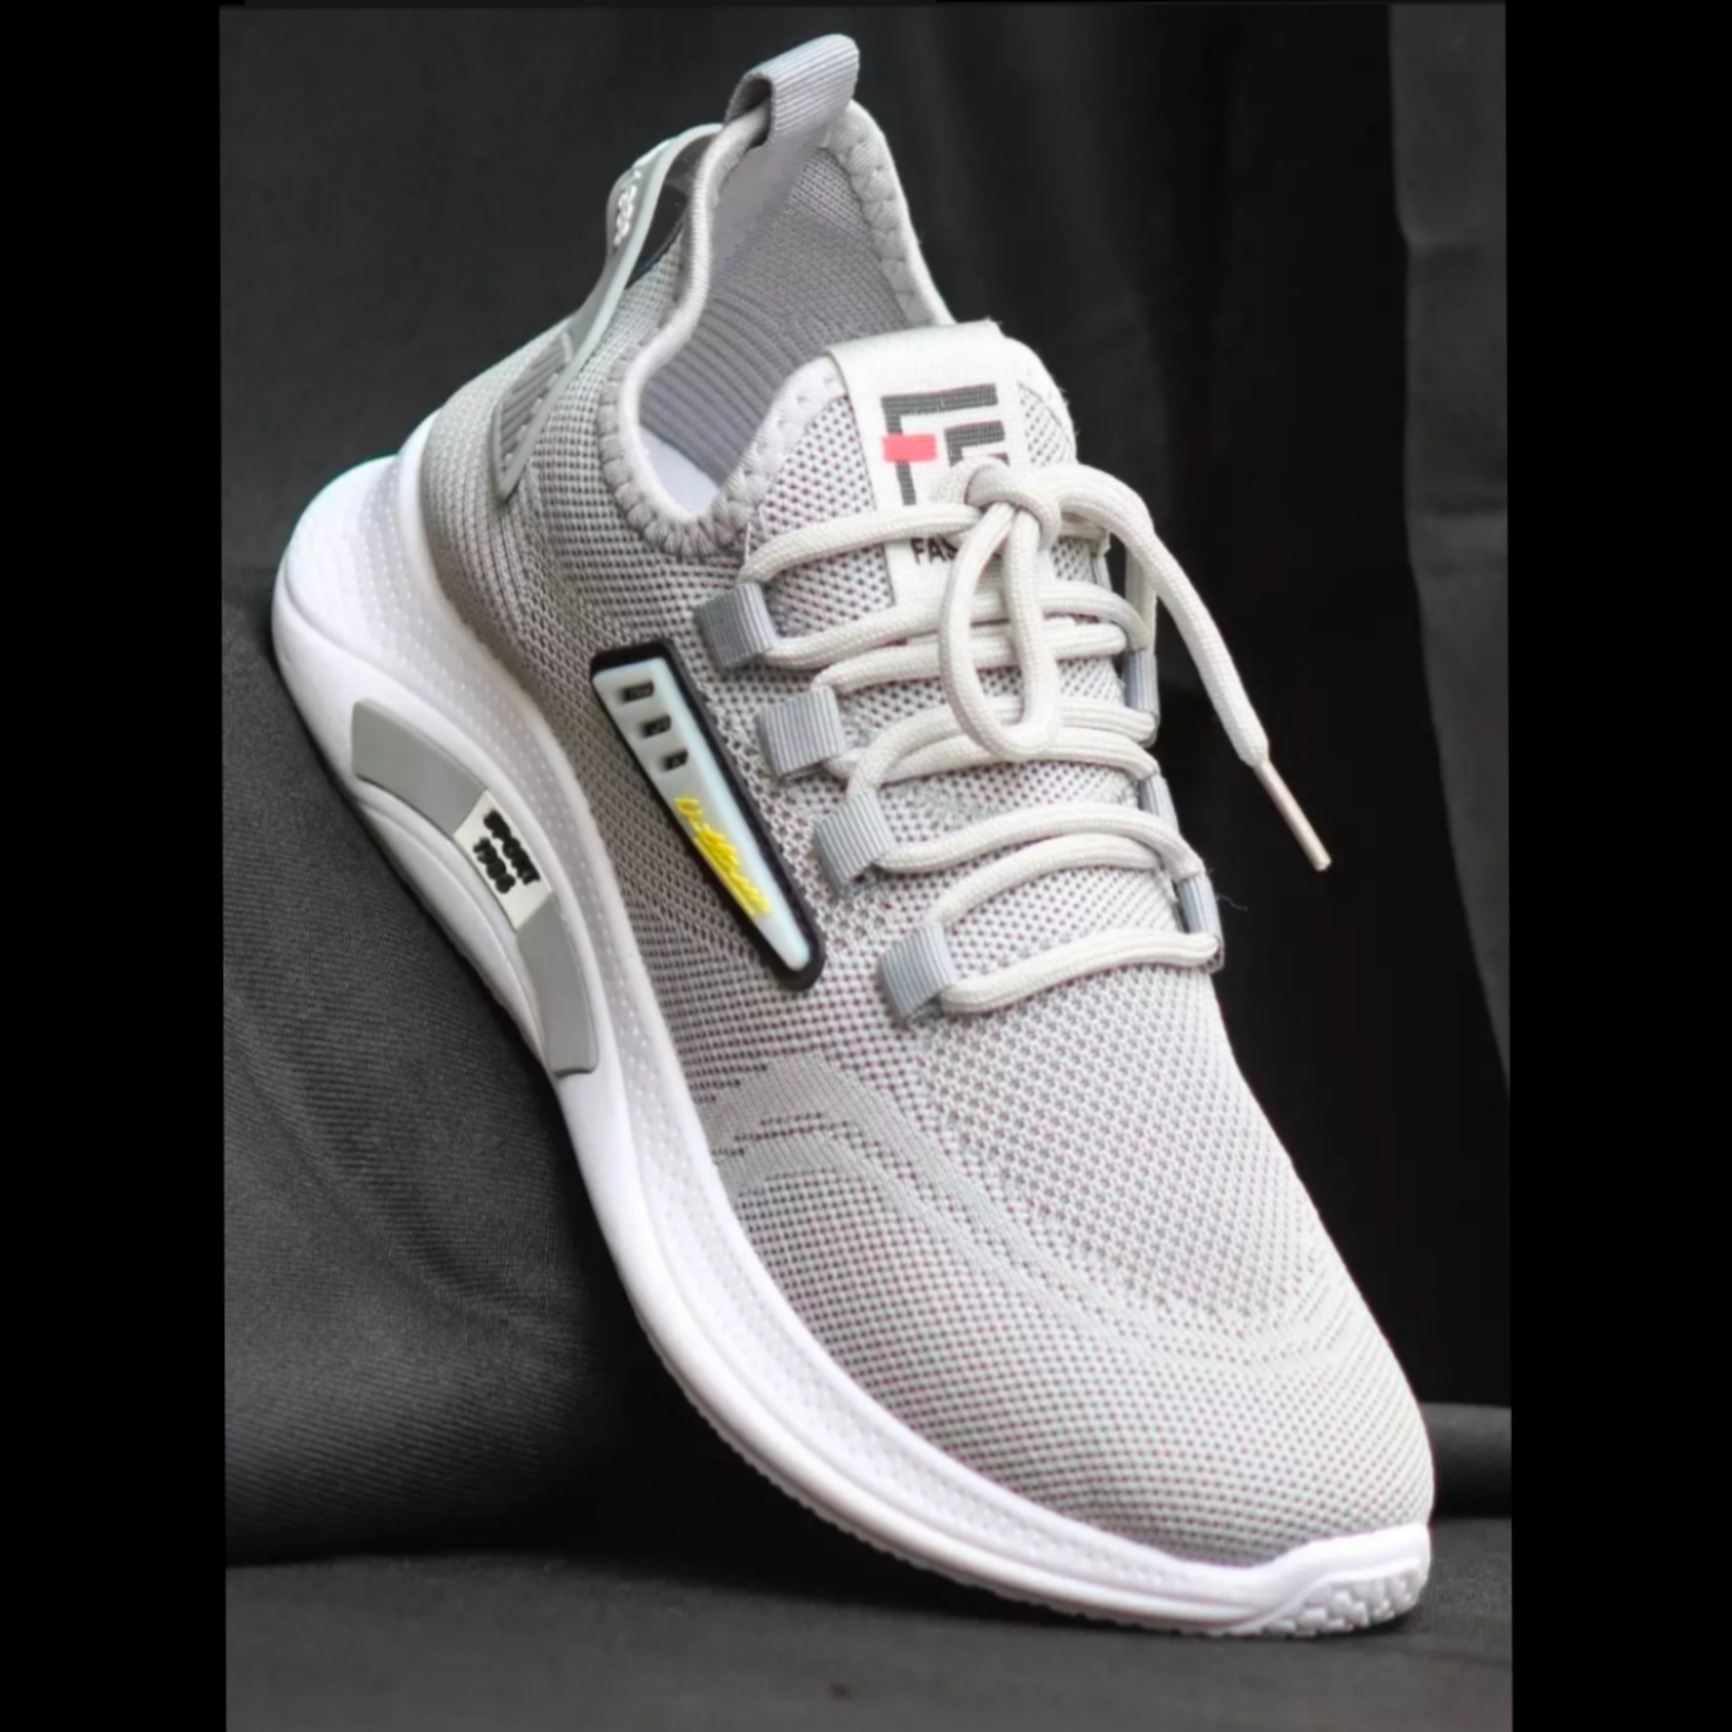 Men's Fashion sporty style, comfortable, breathable, casual, running Sneakers Shoes, Air Mesh LaceUp Sports Style